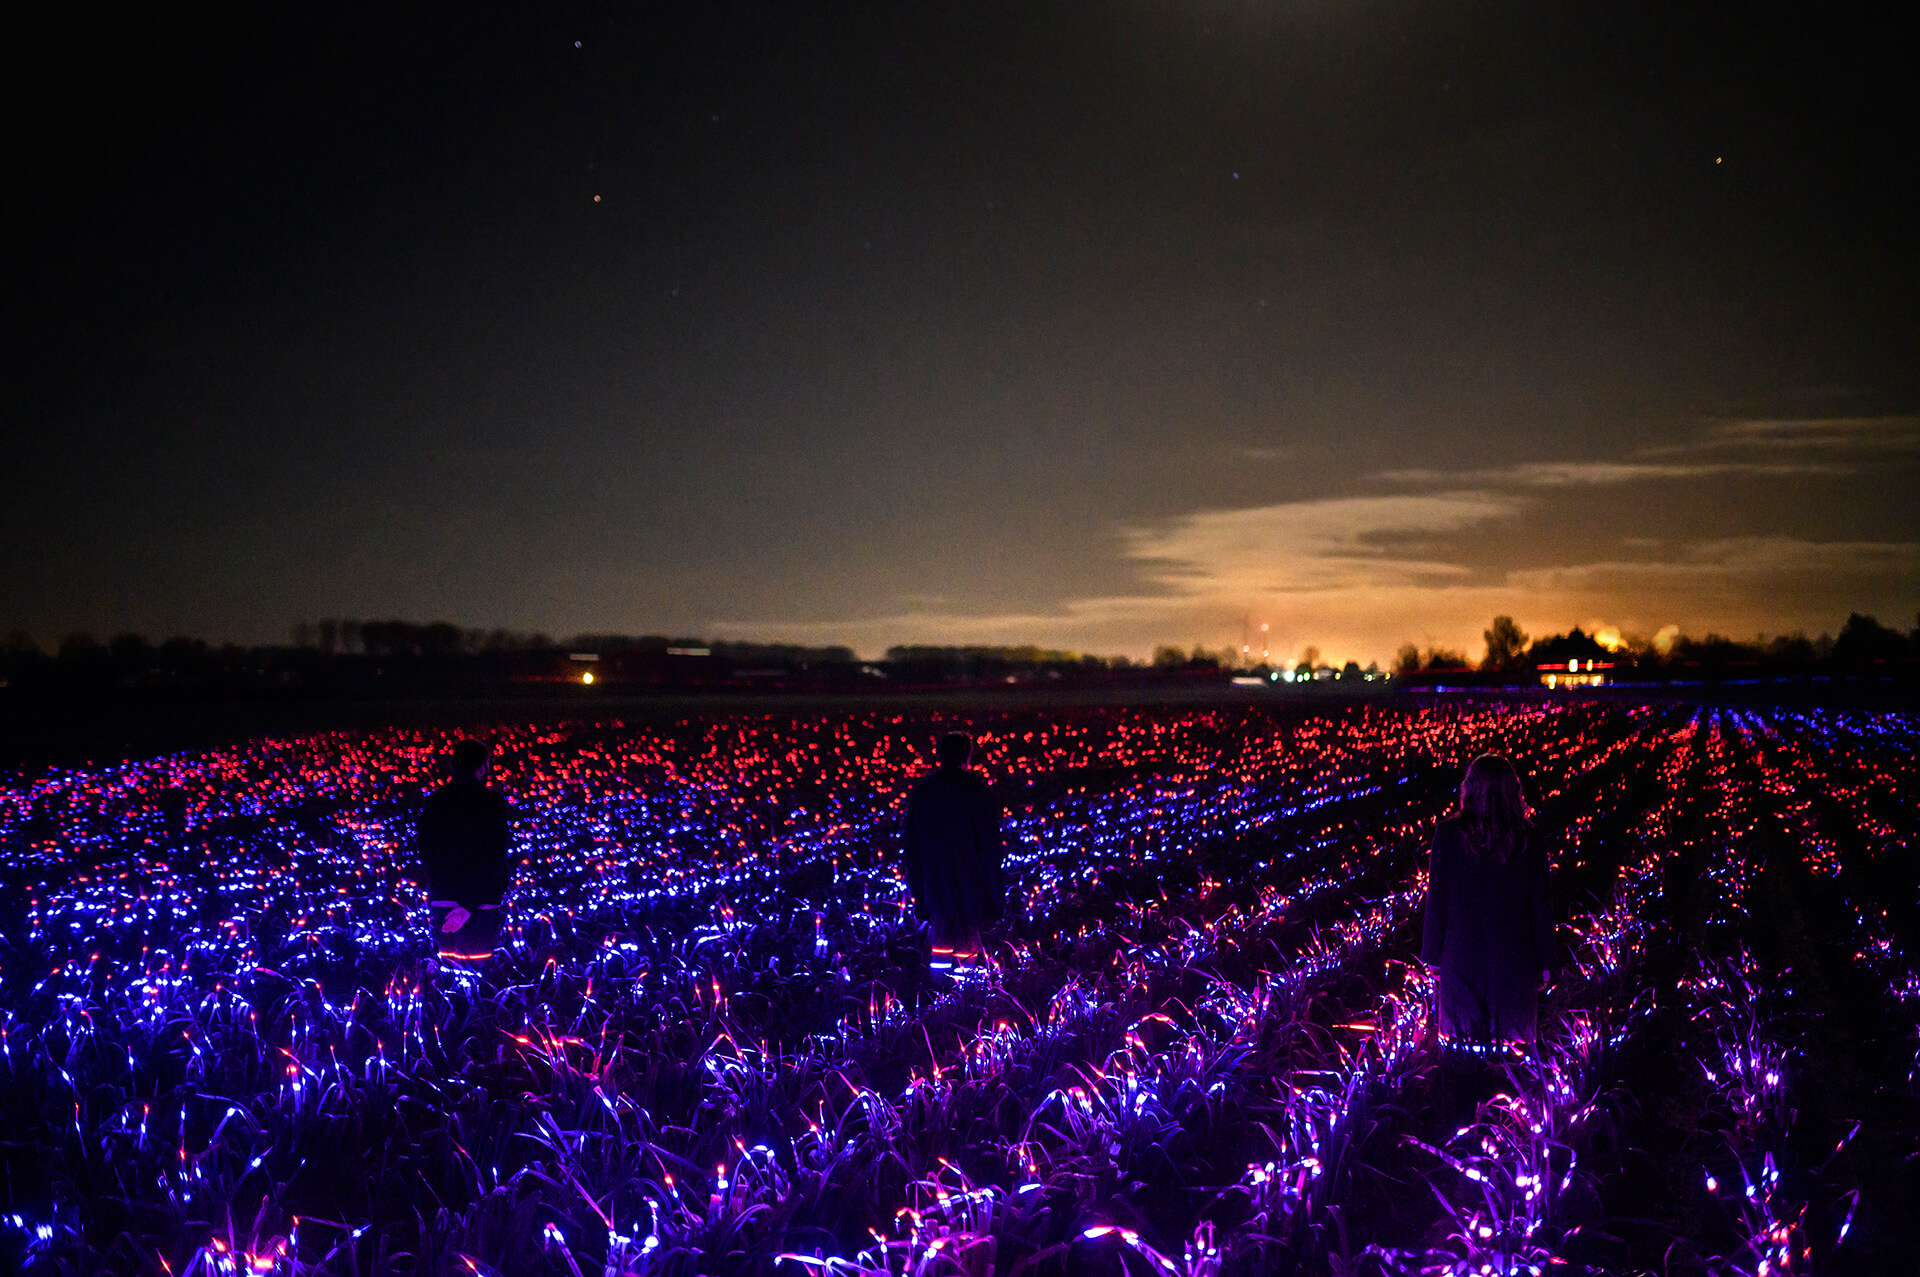 The lights enhance the growth of crops and makes them more resilient | Grow by Daan Roosegaarde | STIRworld